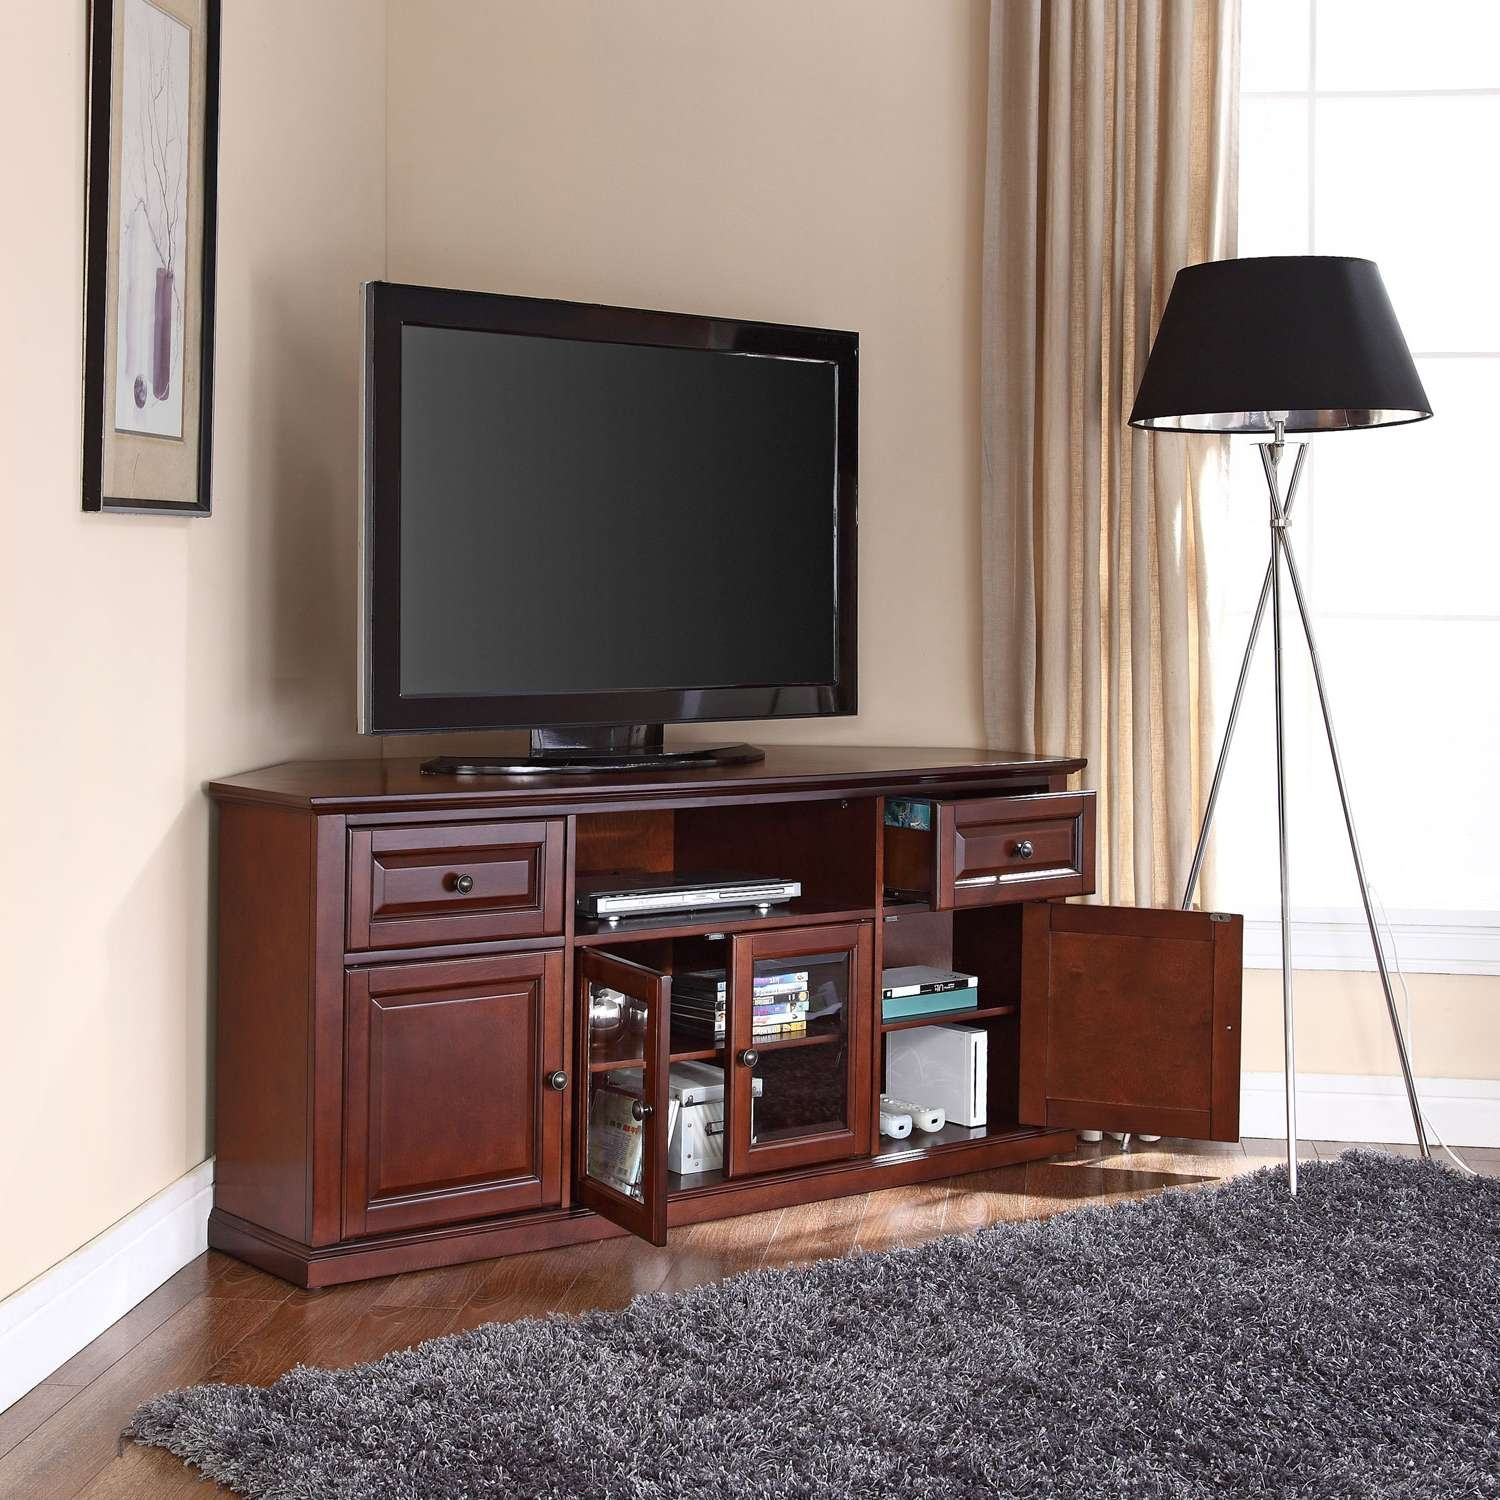 60 Inch Corner Tv Stand In Vintage Mahogany Crosley Furniture Intended For Mahogany Tv Stands Furniture (View 7 of 15)